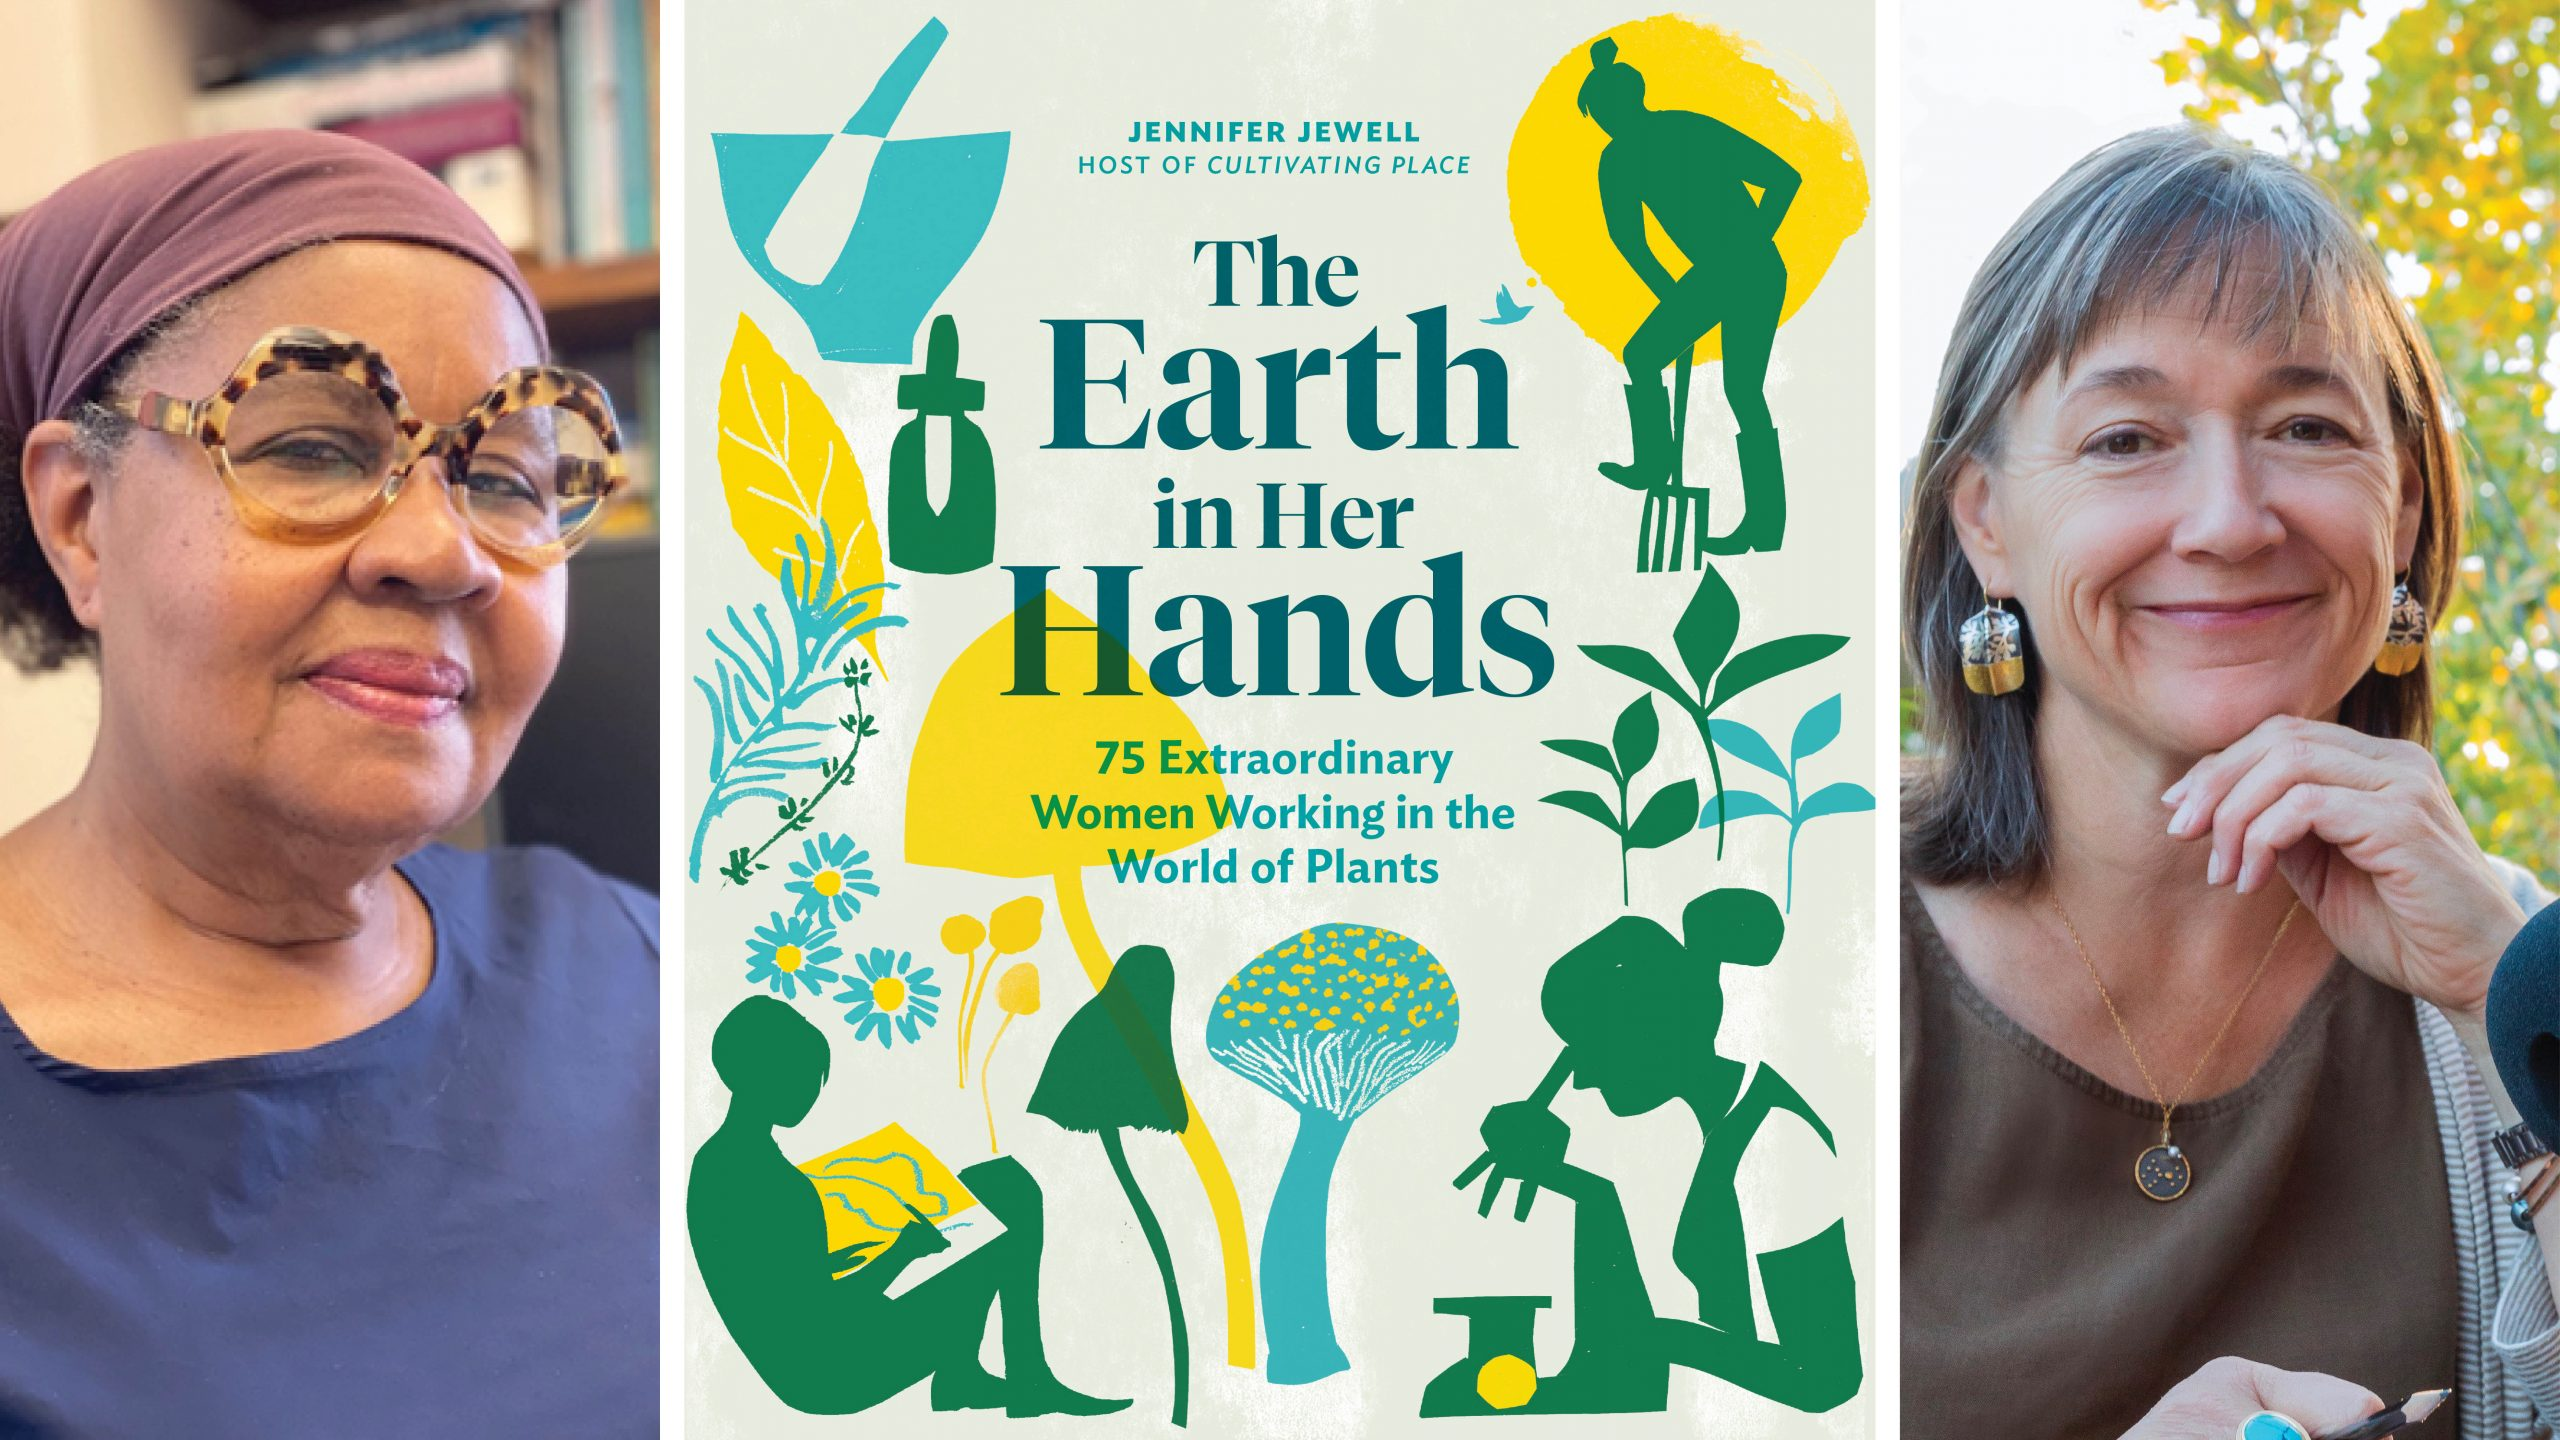 Jamaica Kincaid headshot, with The Earth in Her Hands book cover, and Jennifer Jewell headshot